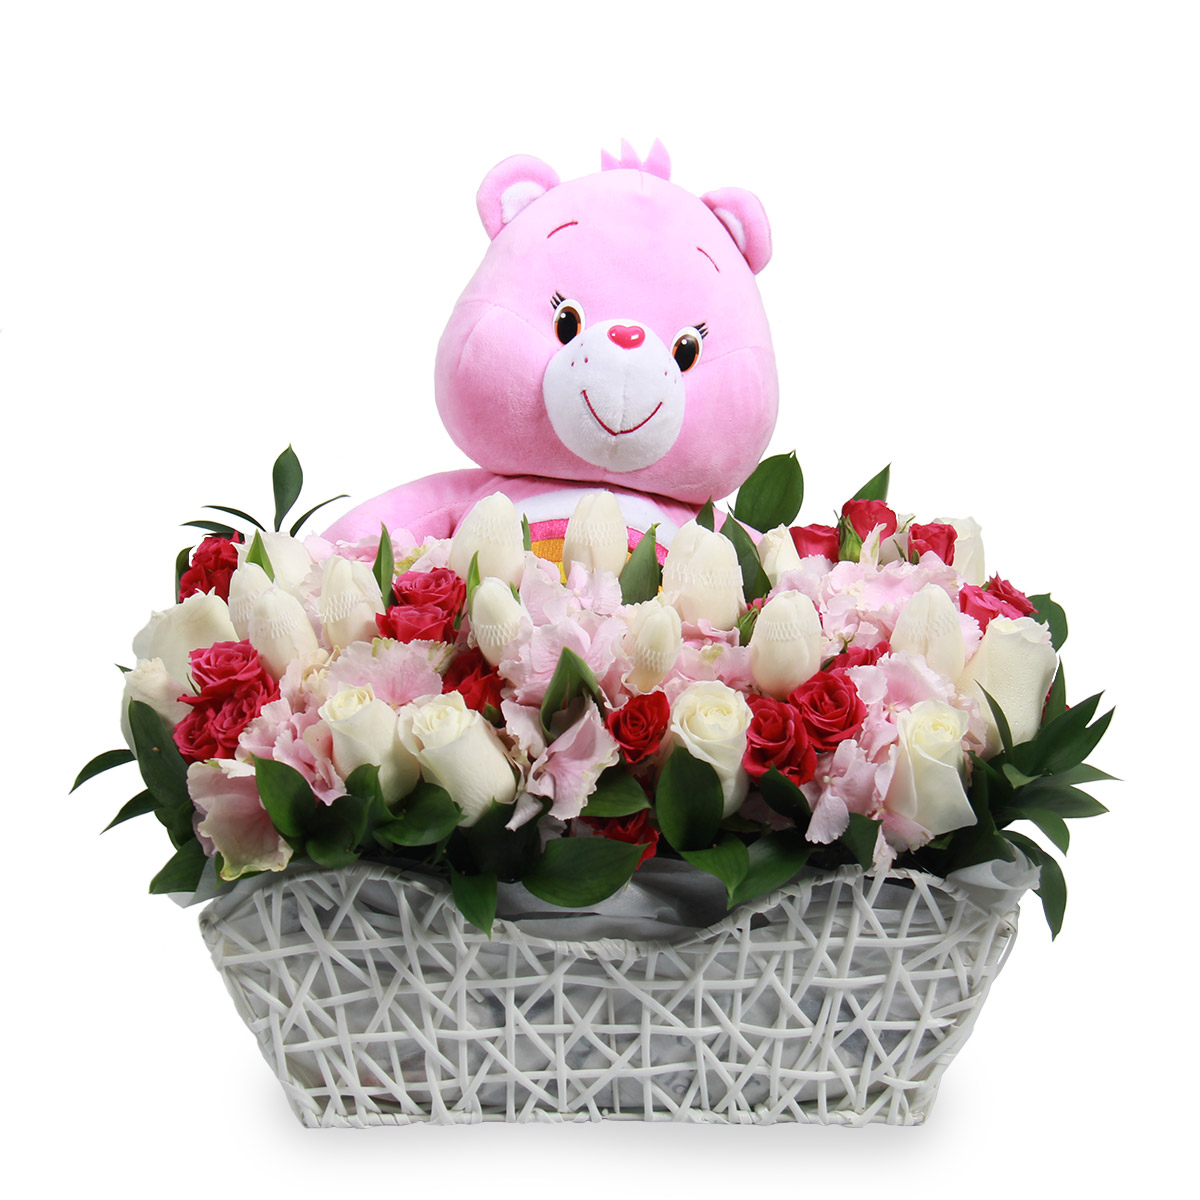 NB1722 joyful newborn baby gifts soft toy pink hydrangea tulips roses